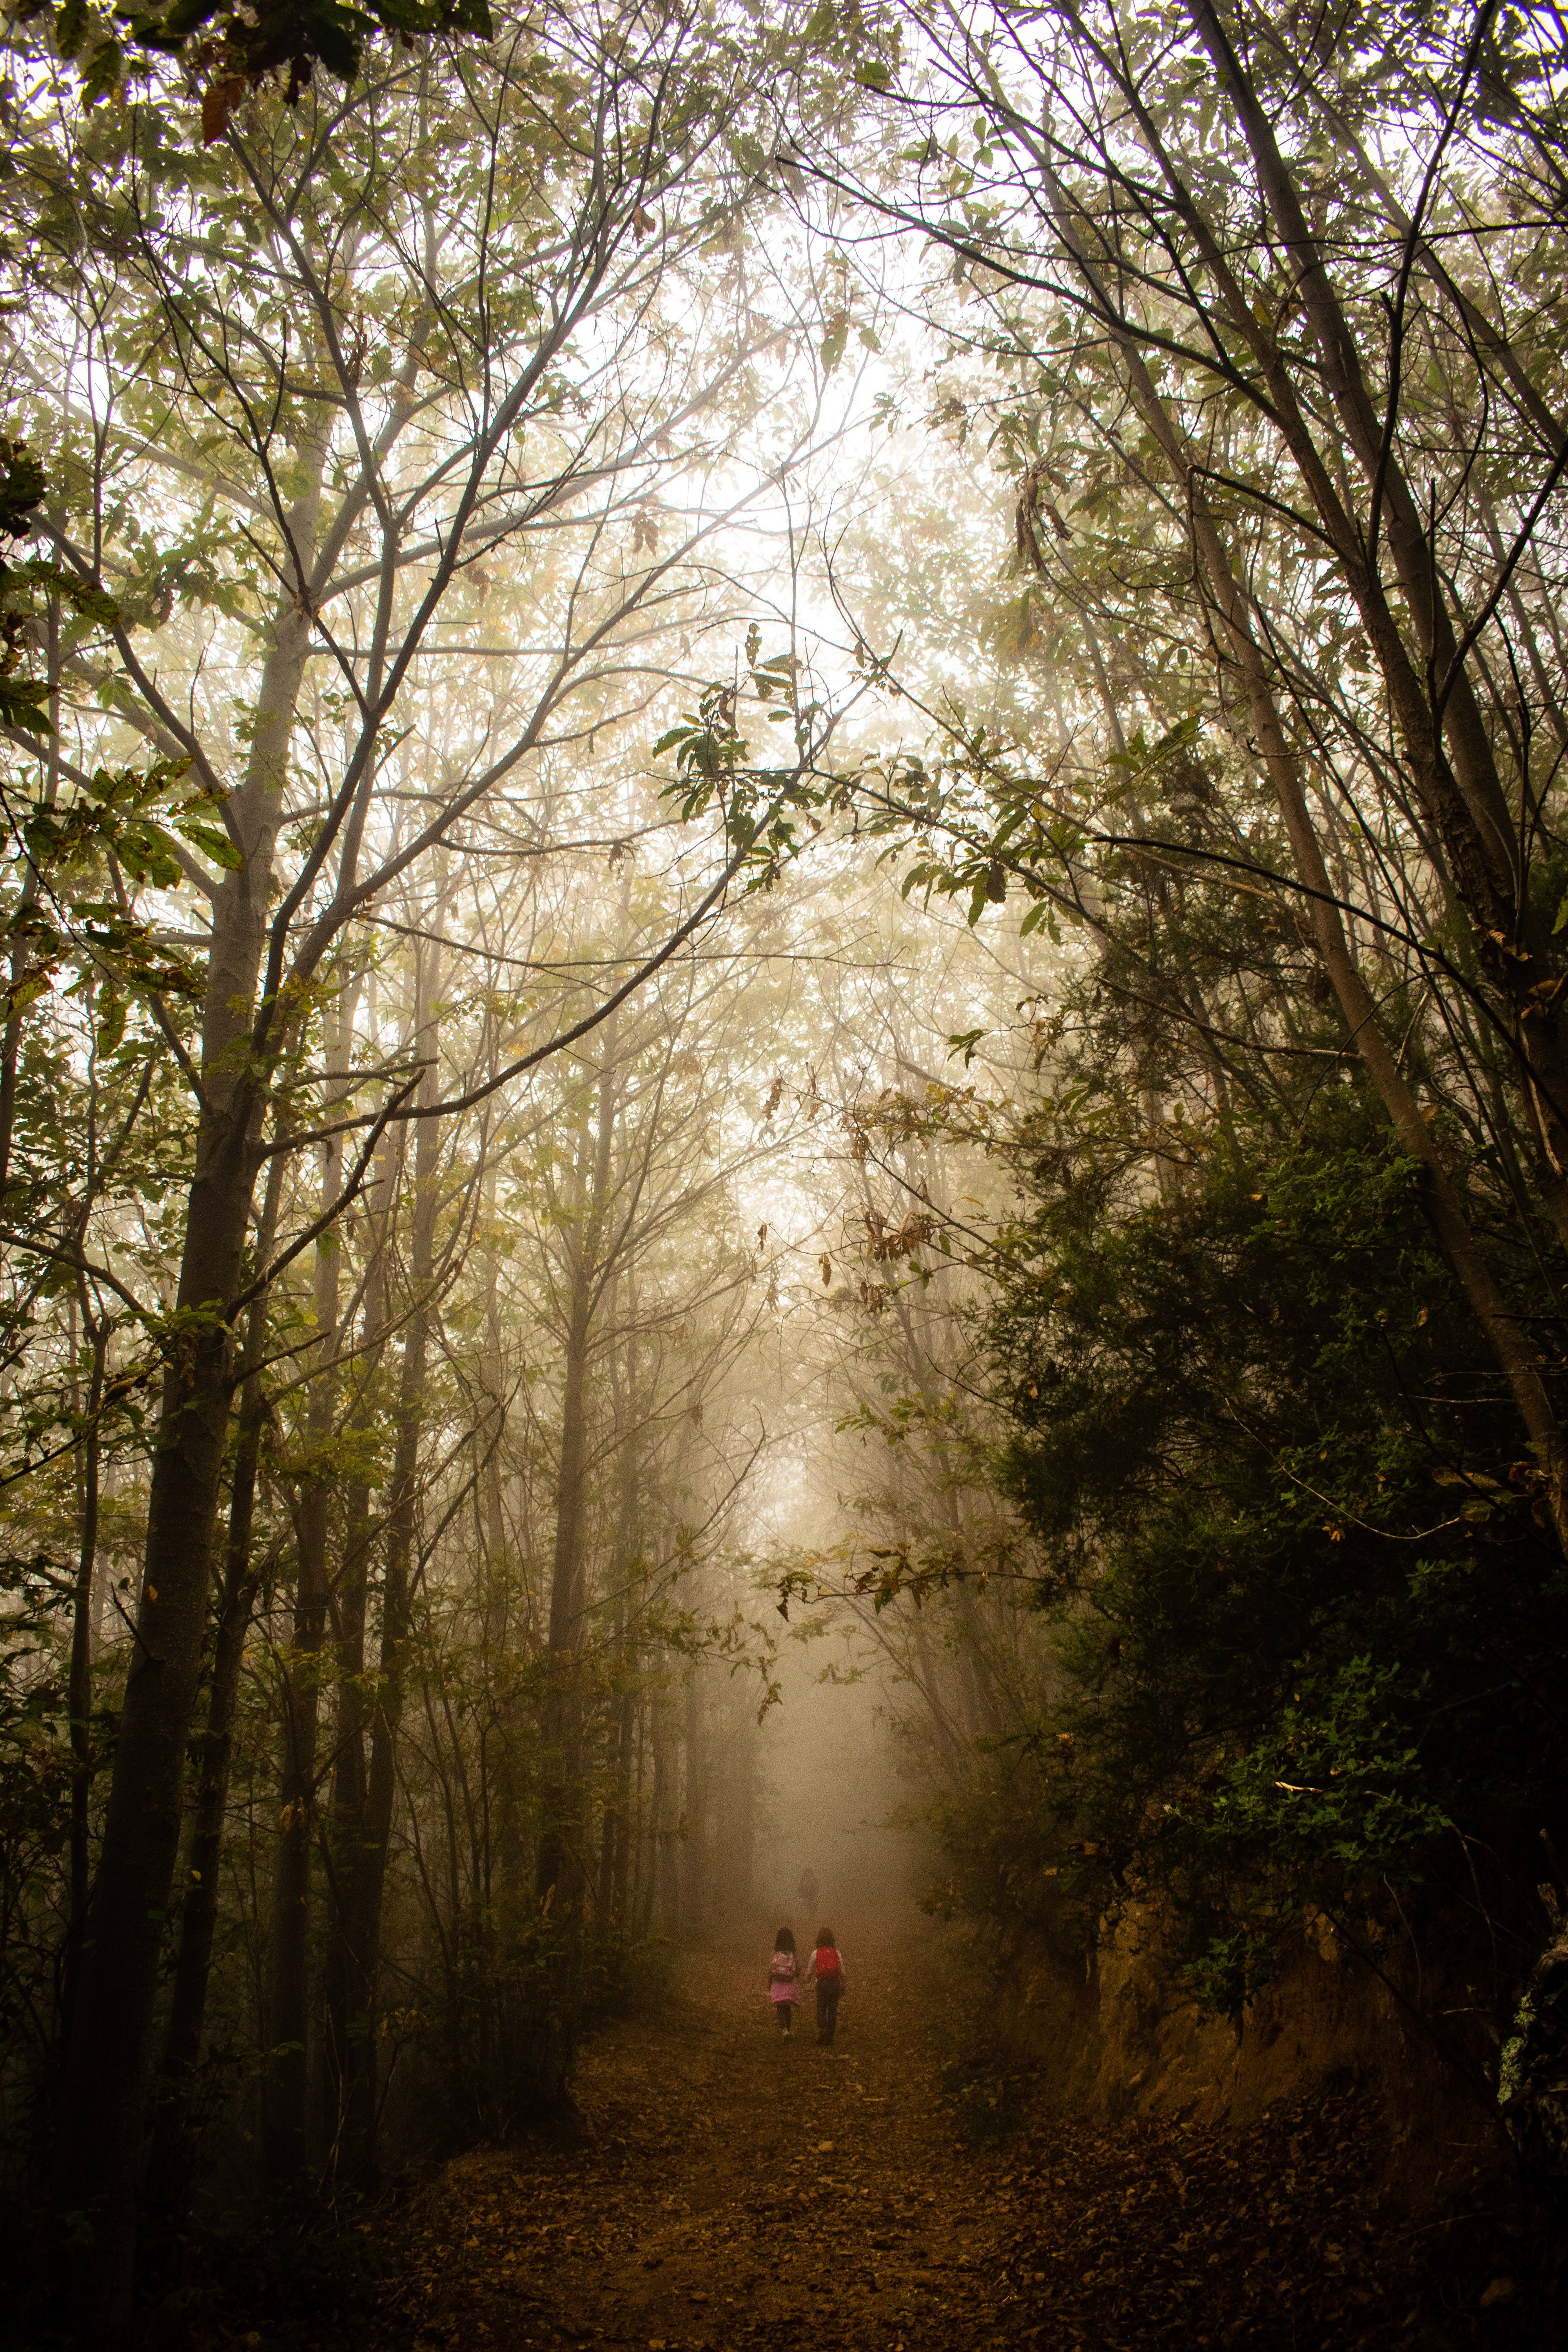 129509 download wallpaper Nature, Children, Forest, Fog, Path, Stroll screensavers and pictures for free